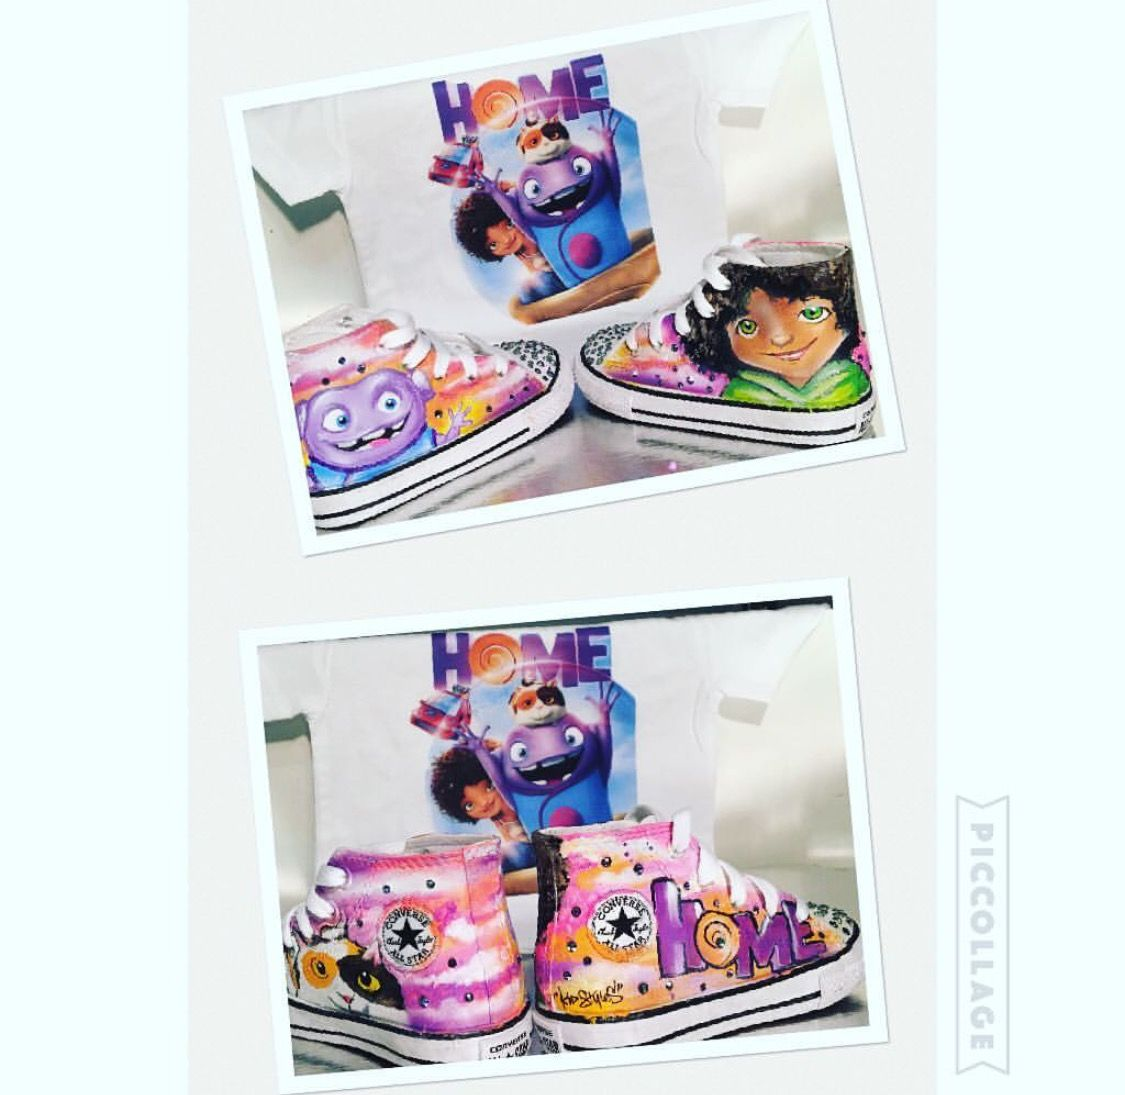 Dreamworks Home Boov Party. Custom Converse | lays party | Pinterest